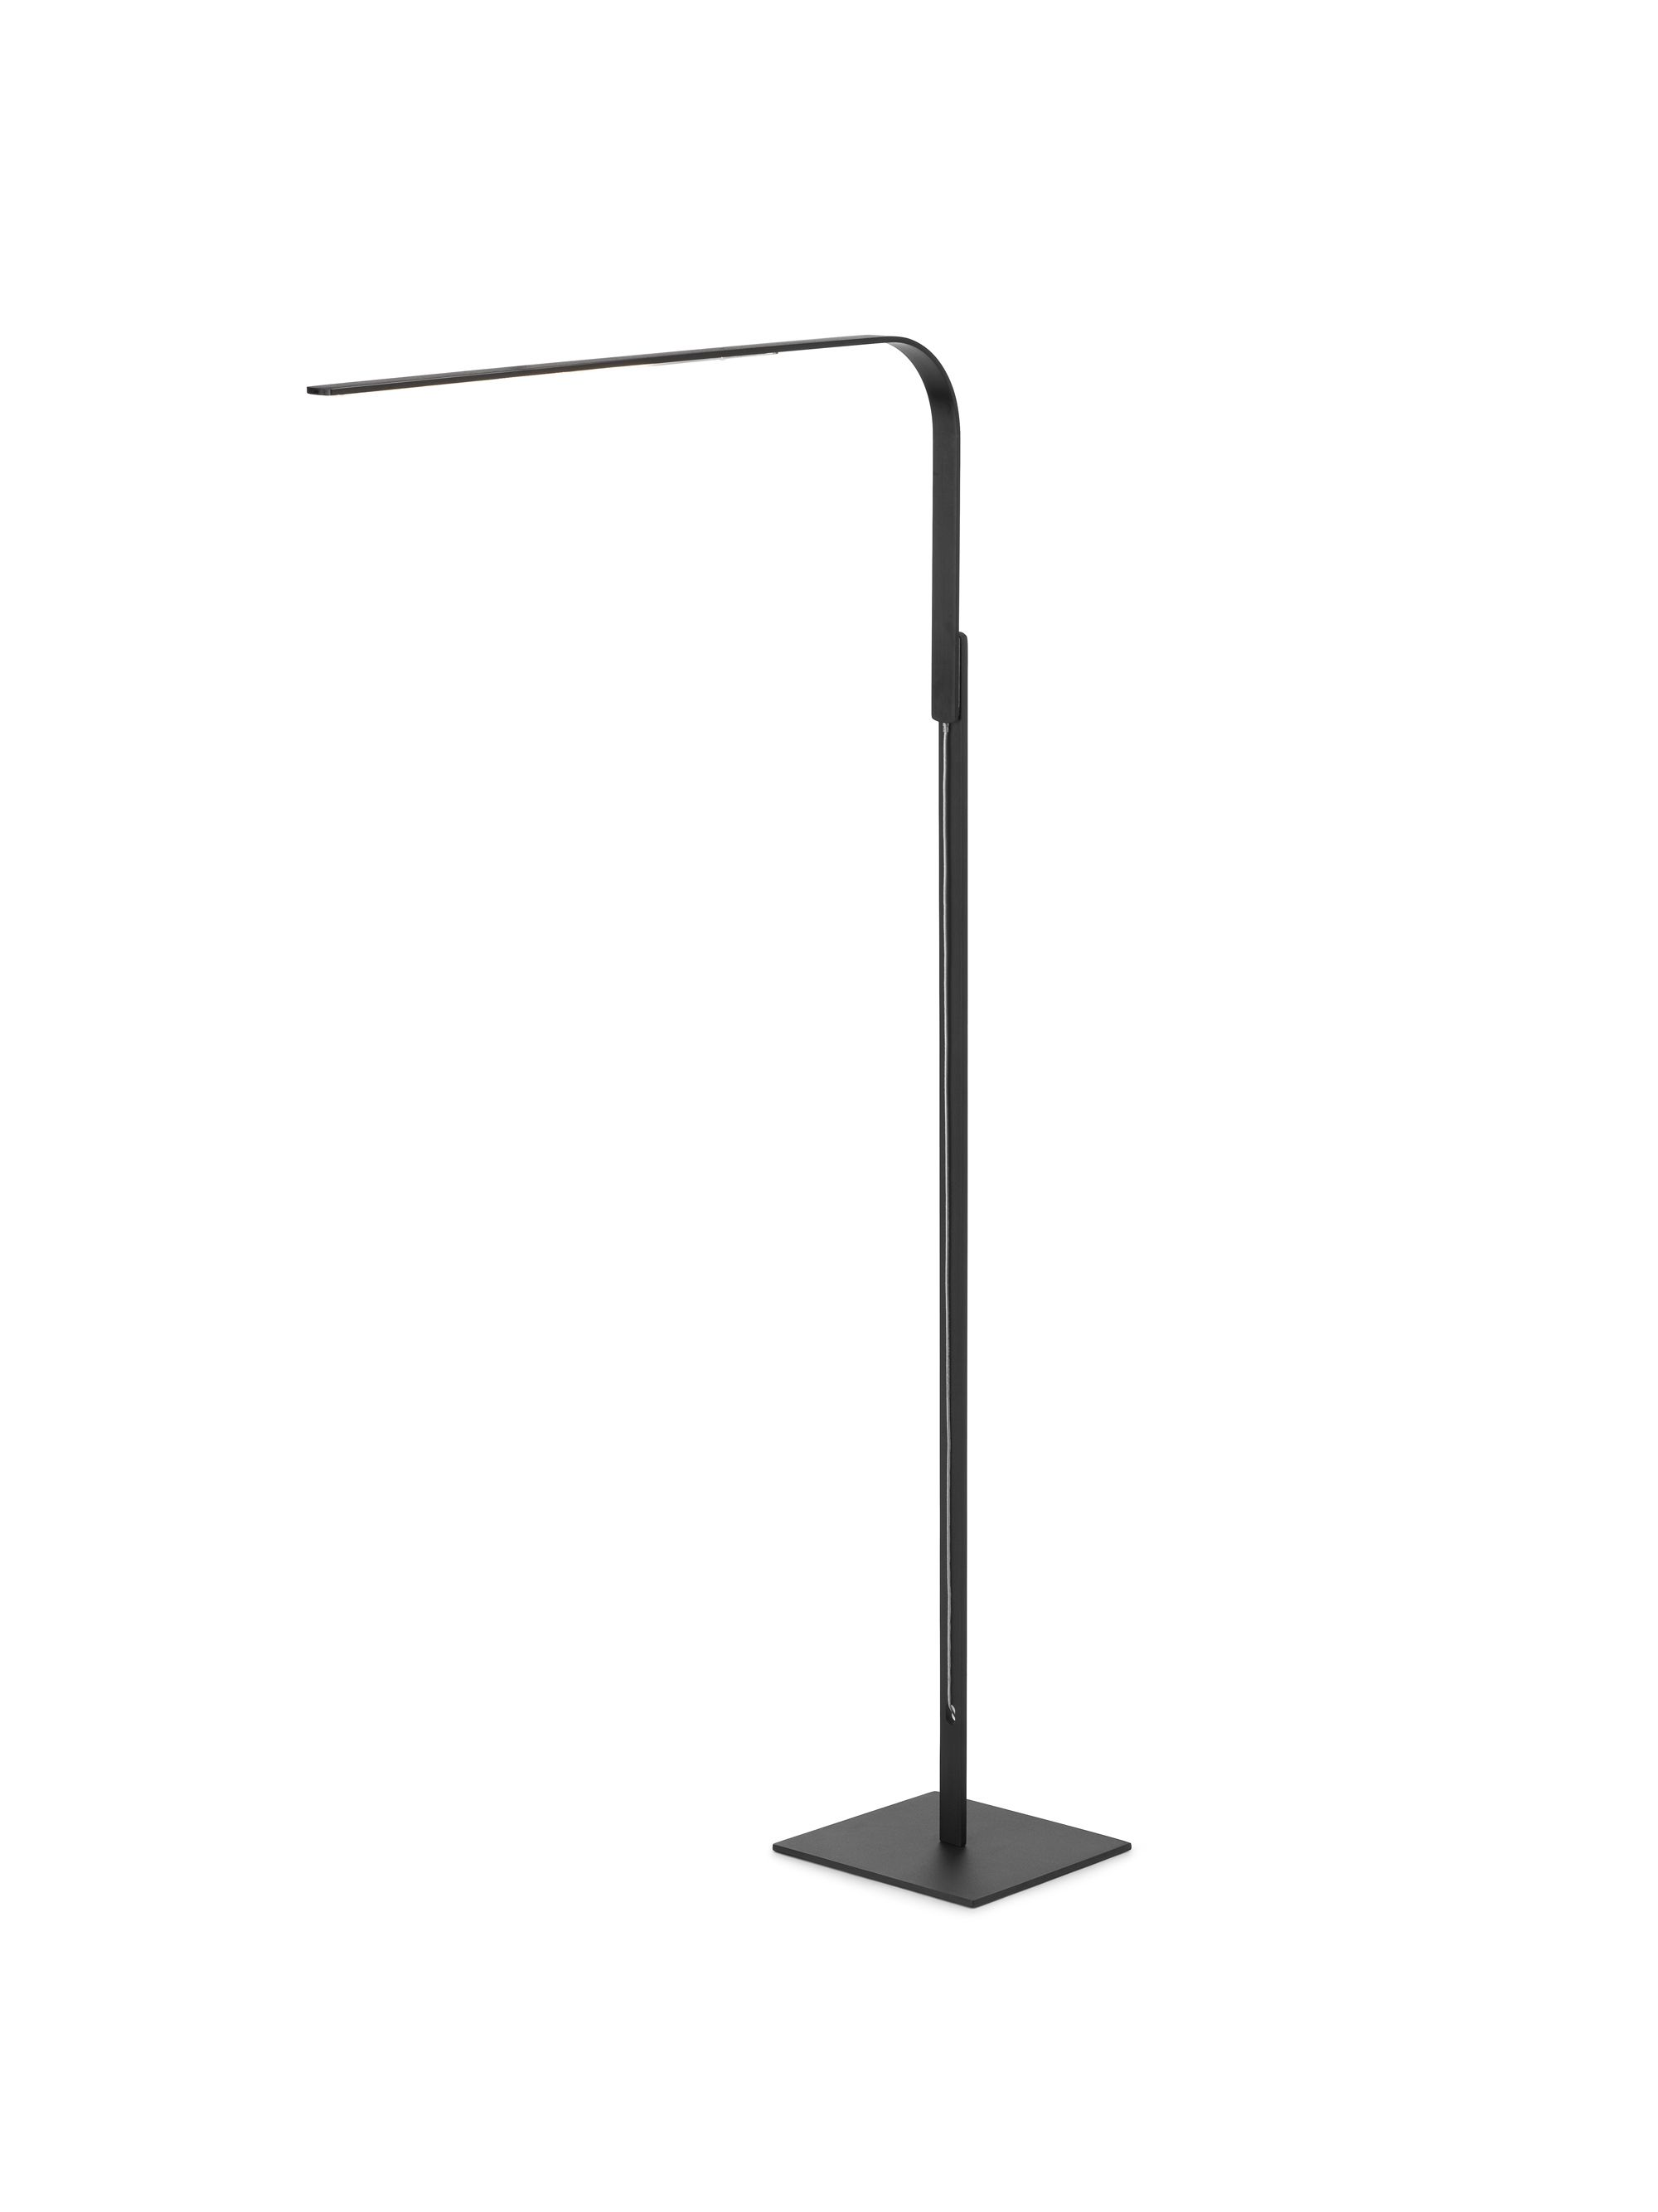 Lim L Floor Lamp by Pablo | PLAYBOOK | Pinterest | Floor lamp and Lights